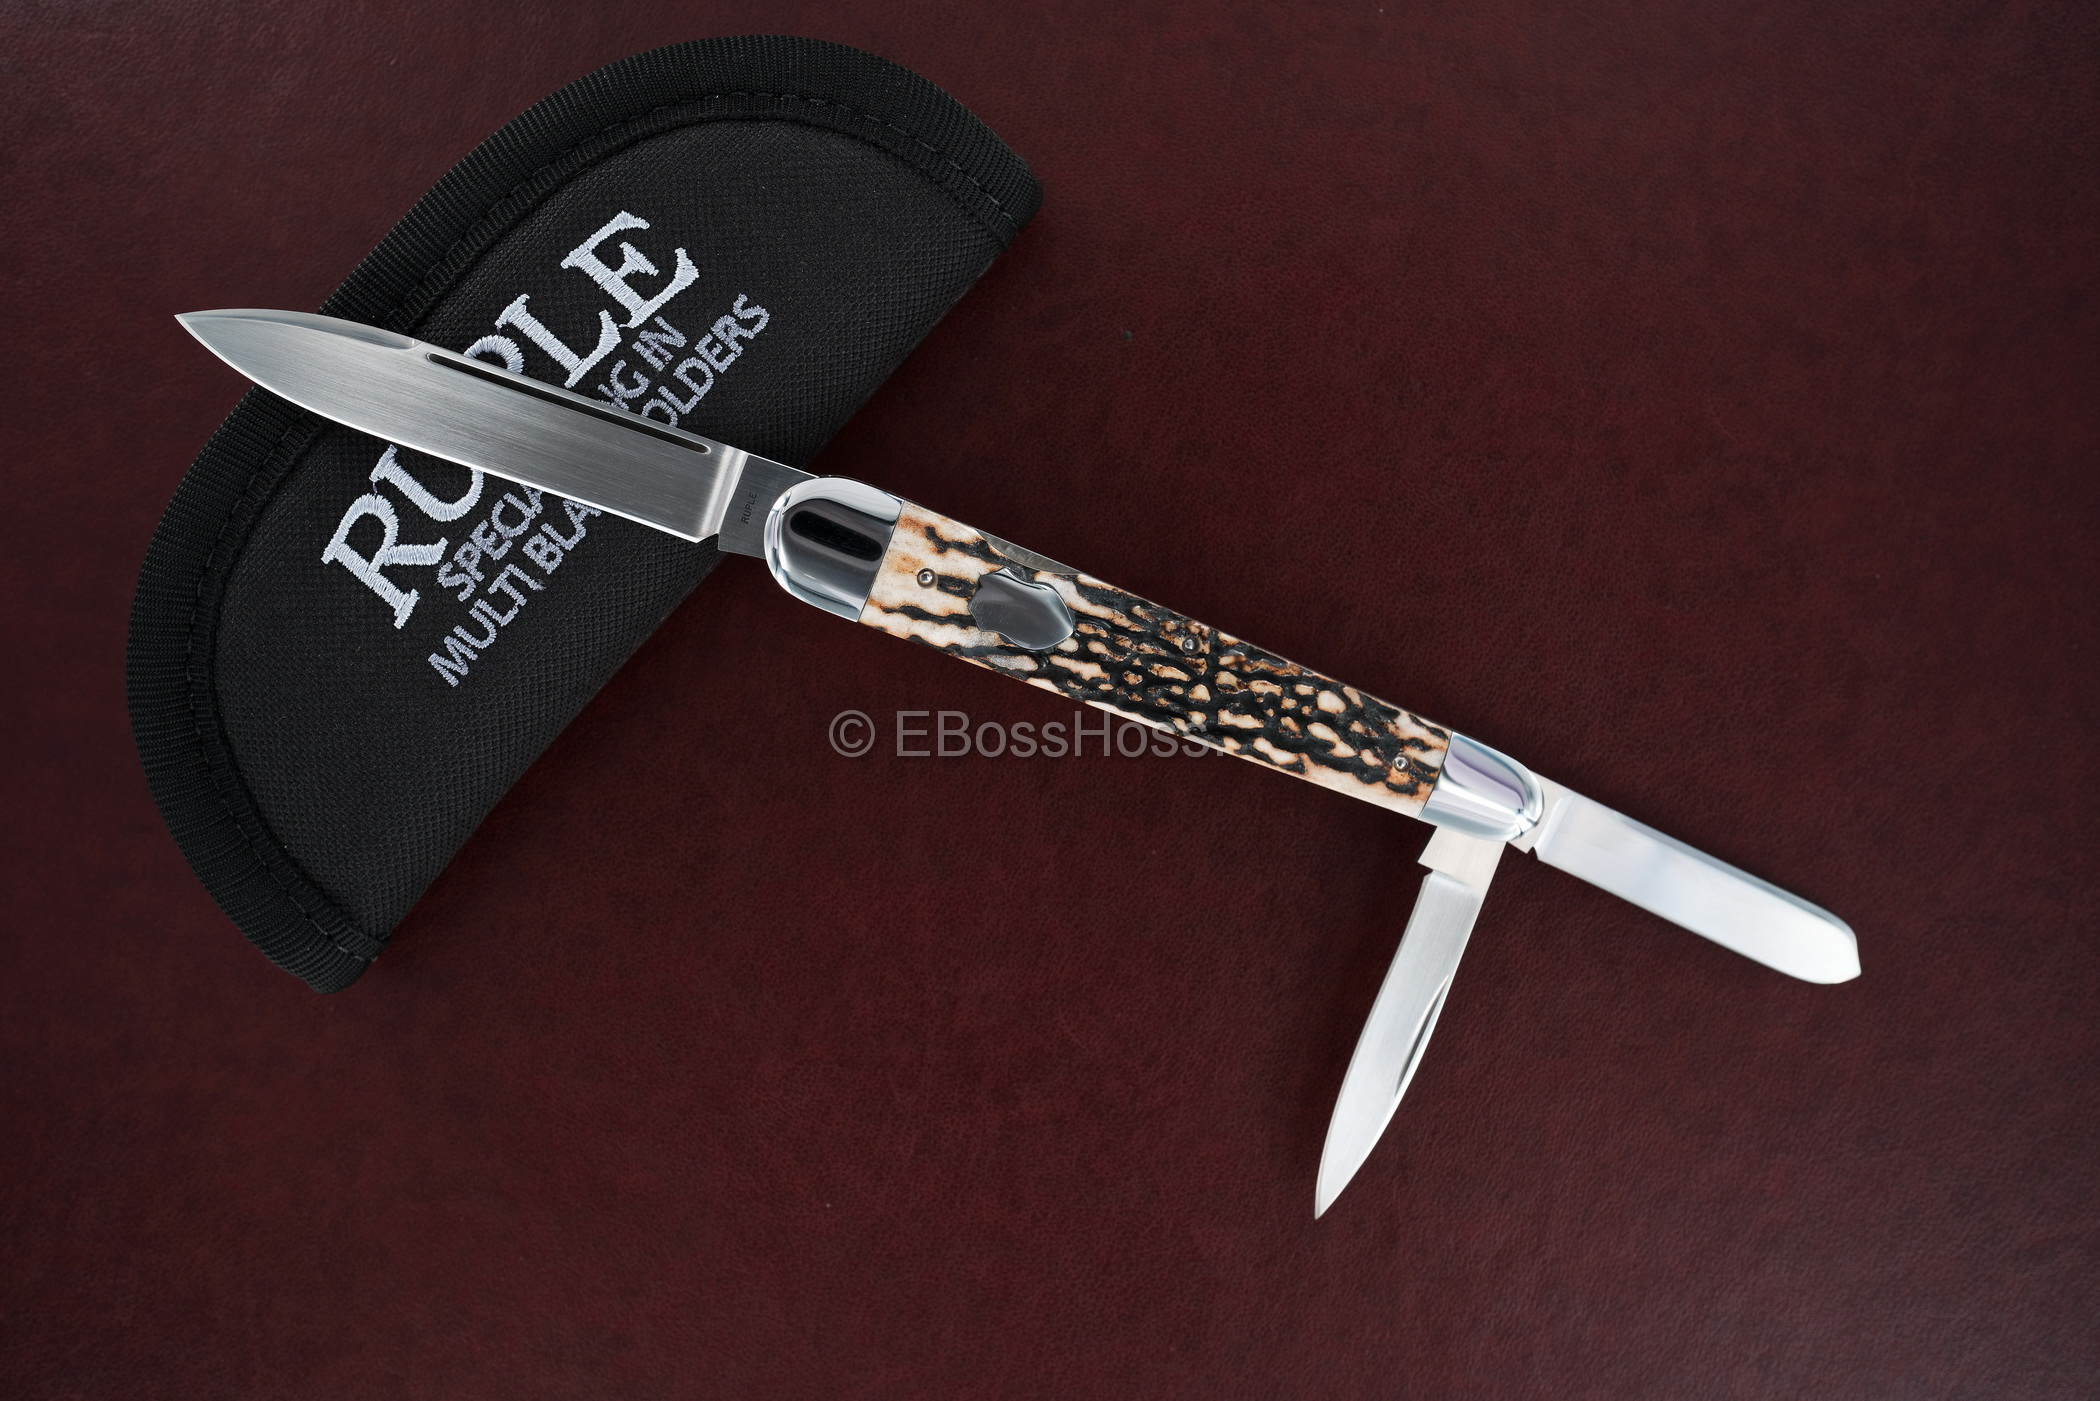 Bill Ruple Custom Deluxe Large Lockback Whittler